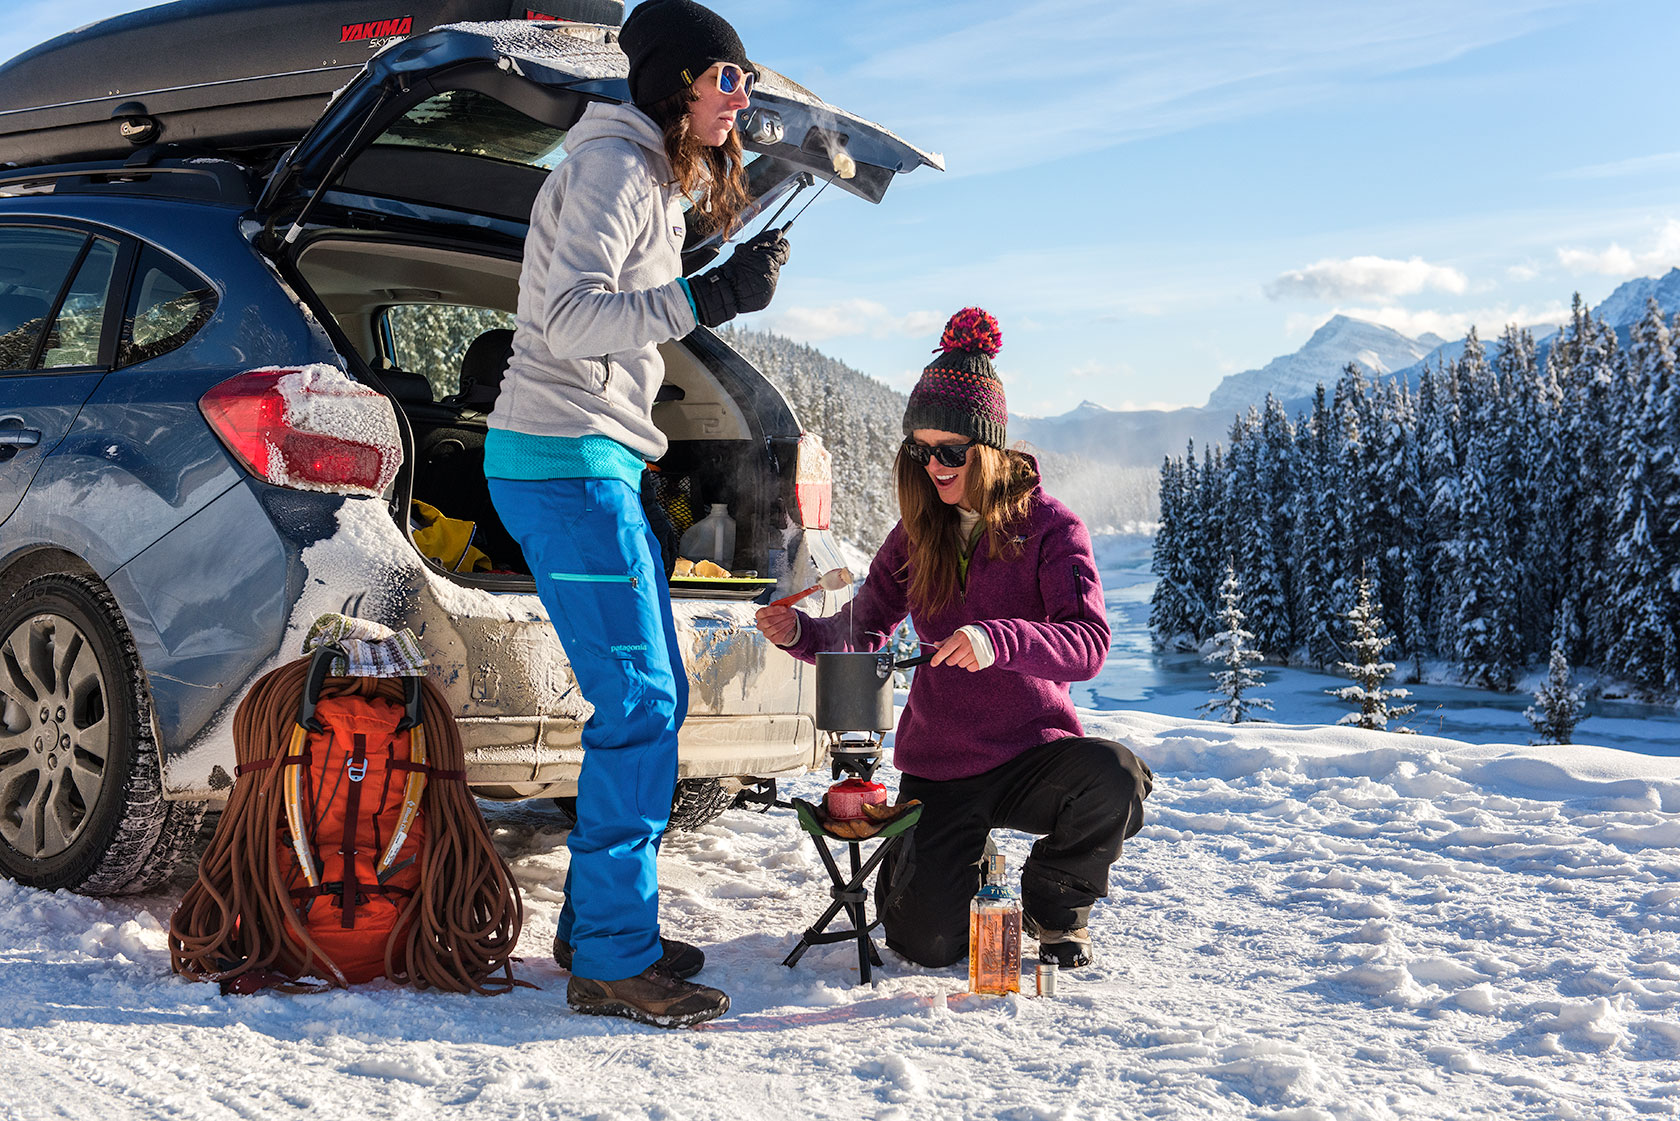 austin-trigg-patagonia-banff-alberta-winter-canada-trip-adventure-outside-snow-forest-morants-curve-fondue-roadside-cooking-mountain-ice-climbing-product-lifestyle.jpg